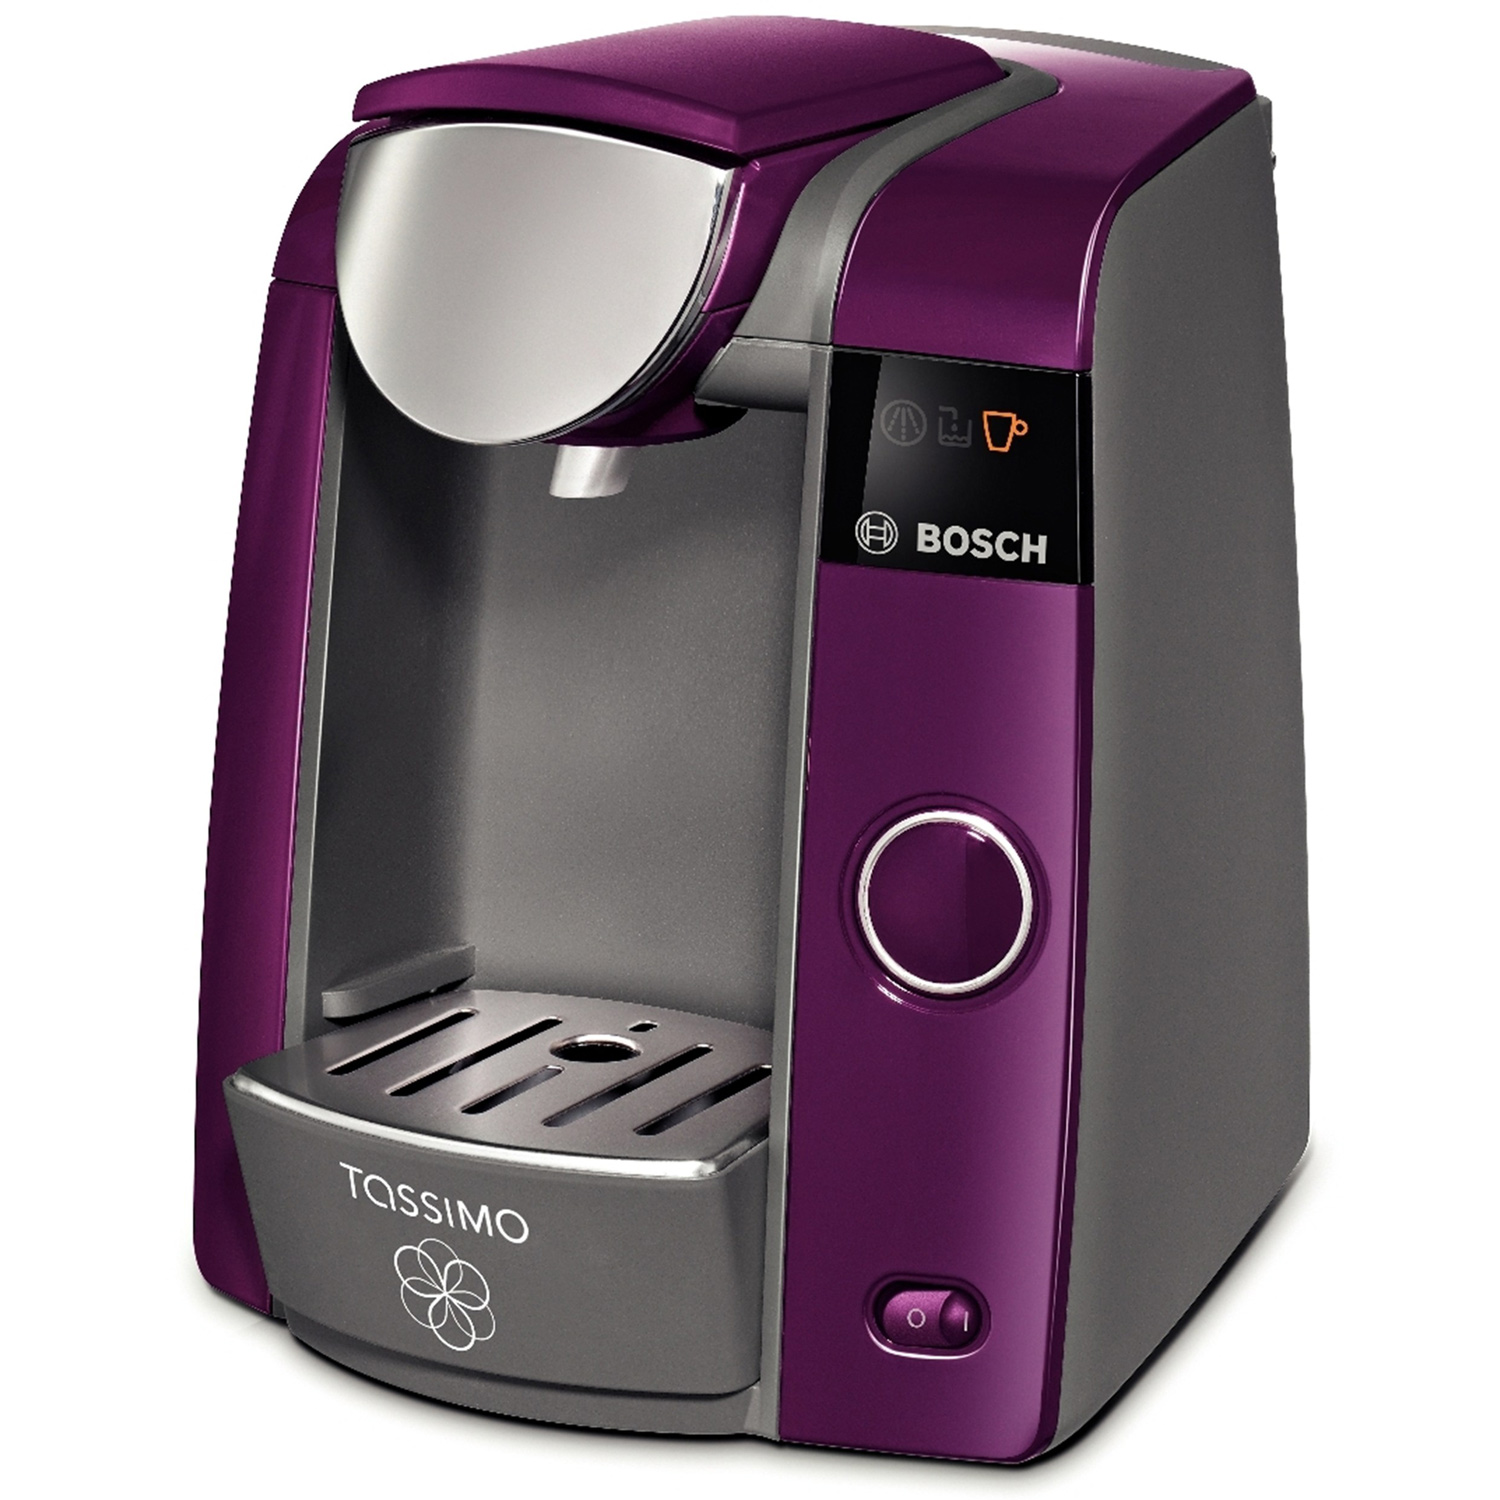 Bosch tassimo t43 joy hot drinks coffee machine passion purple tas4301 at about shop - Support capsule tassimo bosch ...